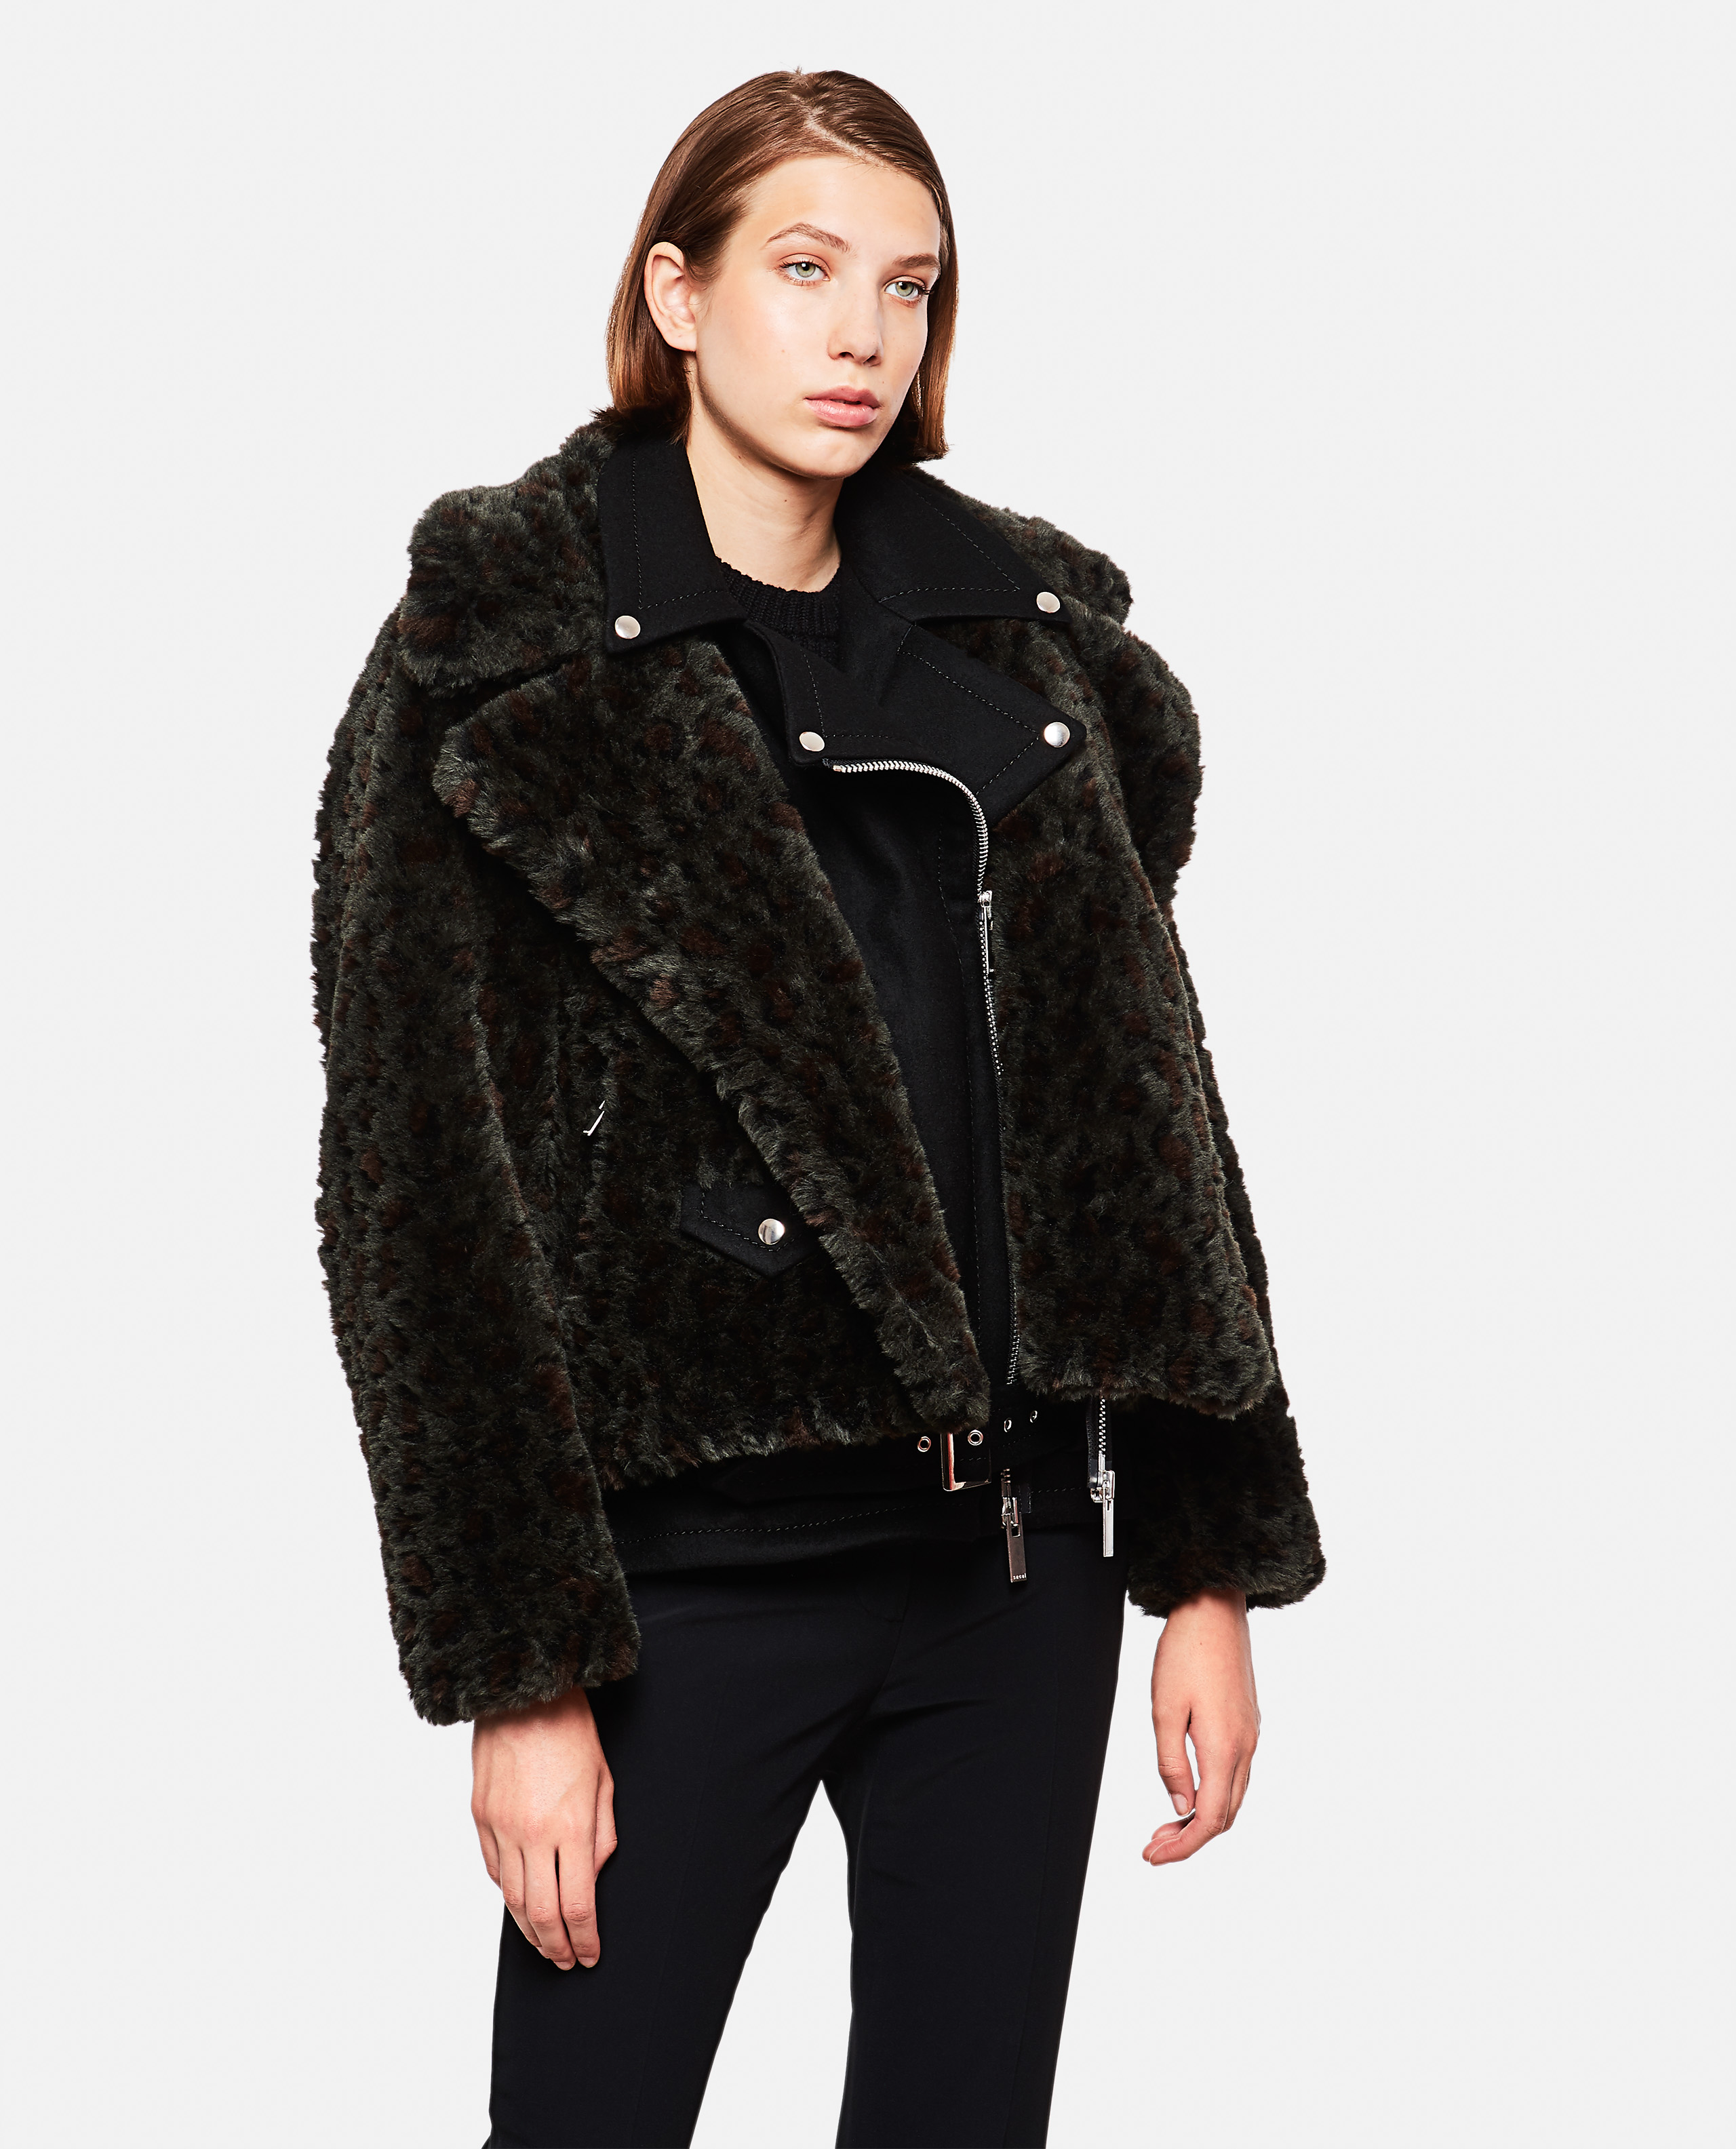 Sacai Jacket With Fur In Black